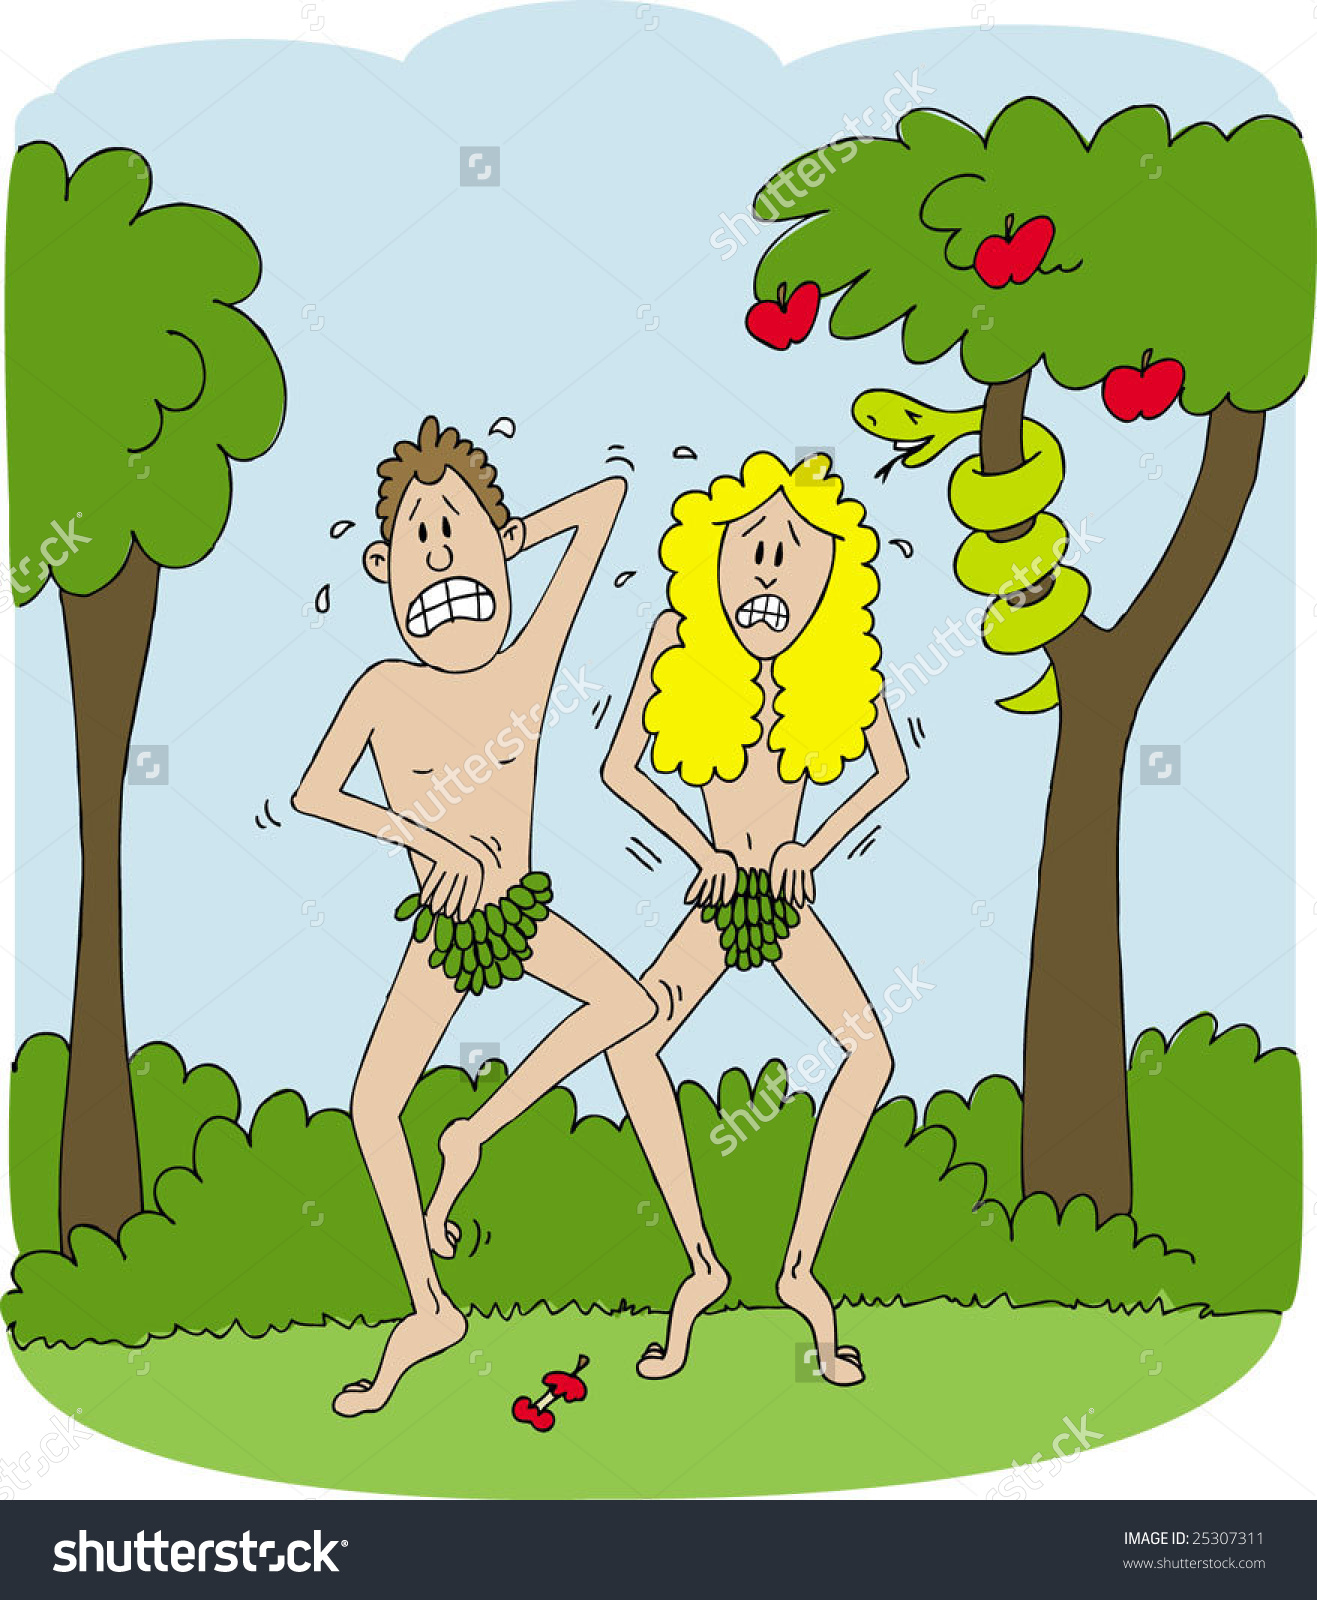 Adam And Eve clipart Adam And Eve In The Garden Of Eden Clipart Eve eve in Stock garden